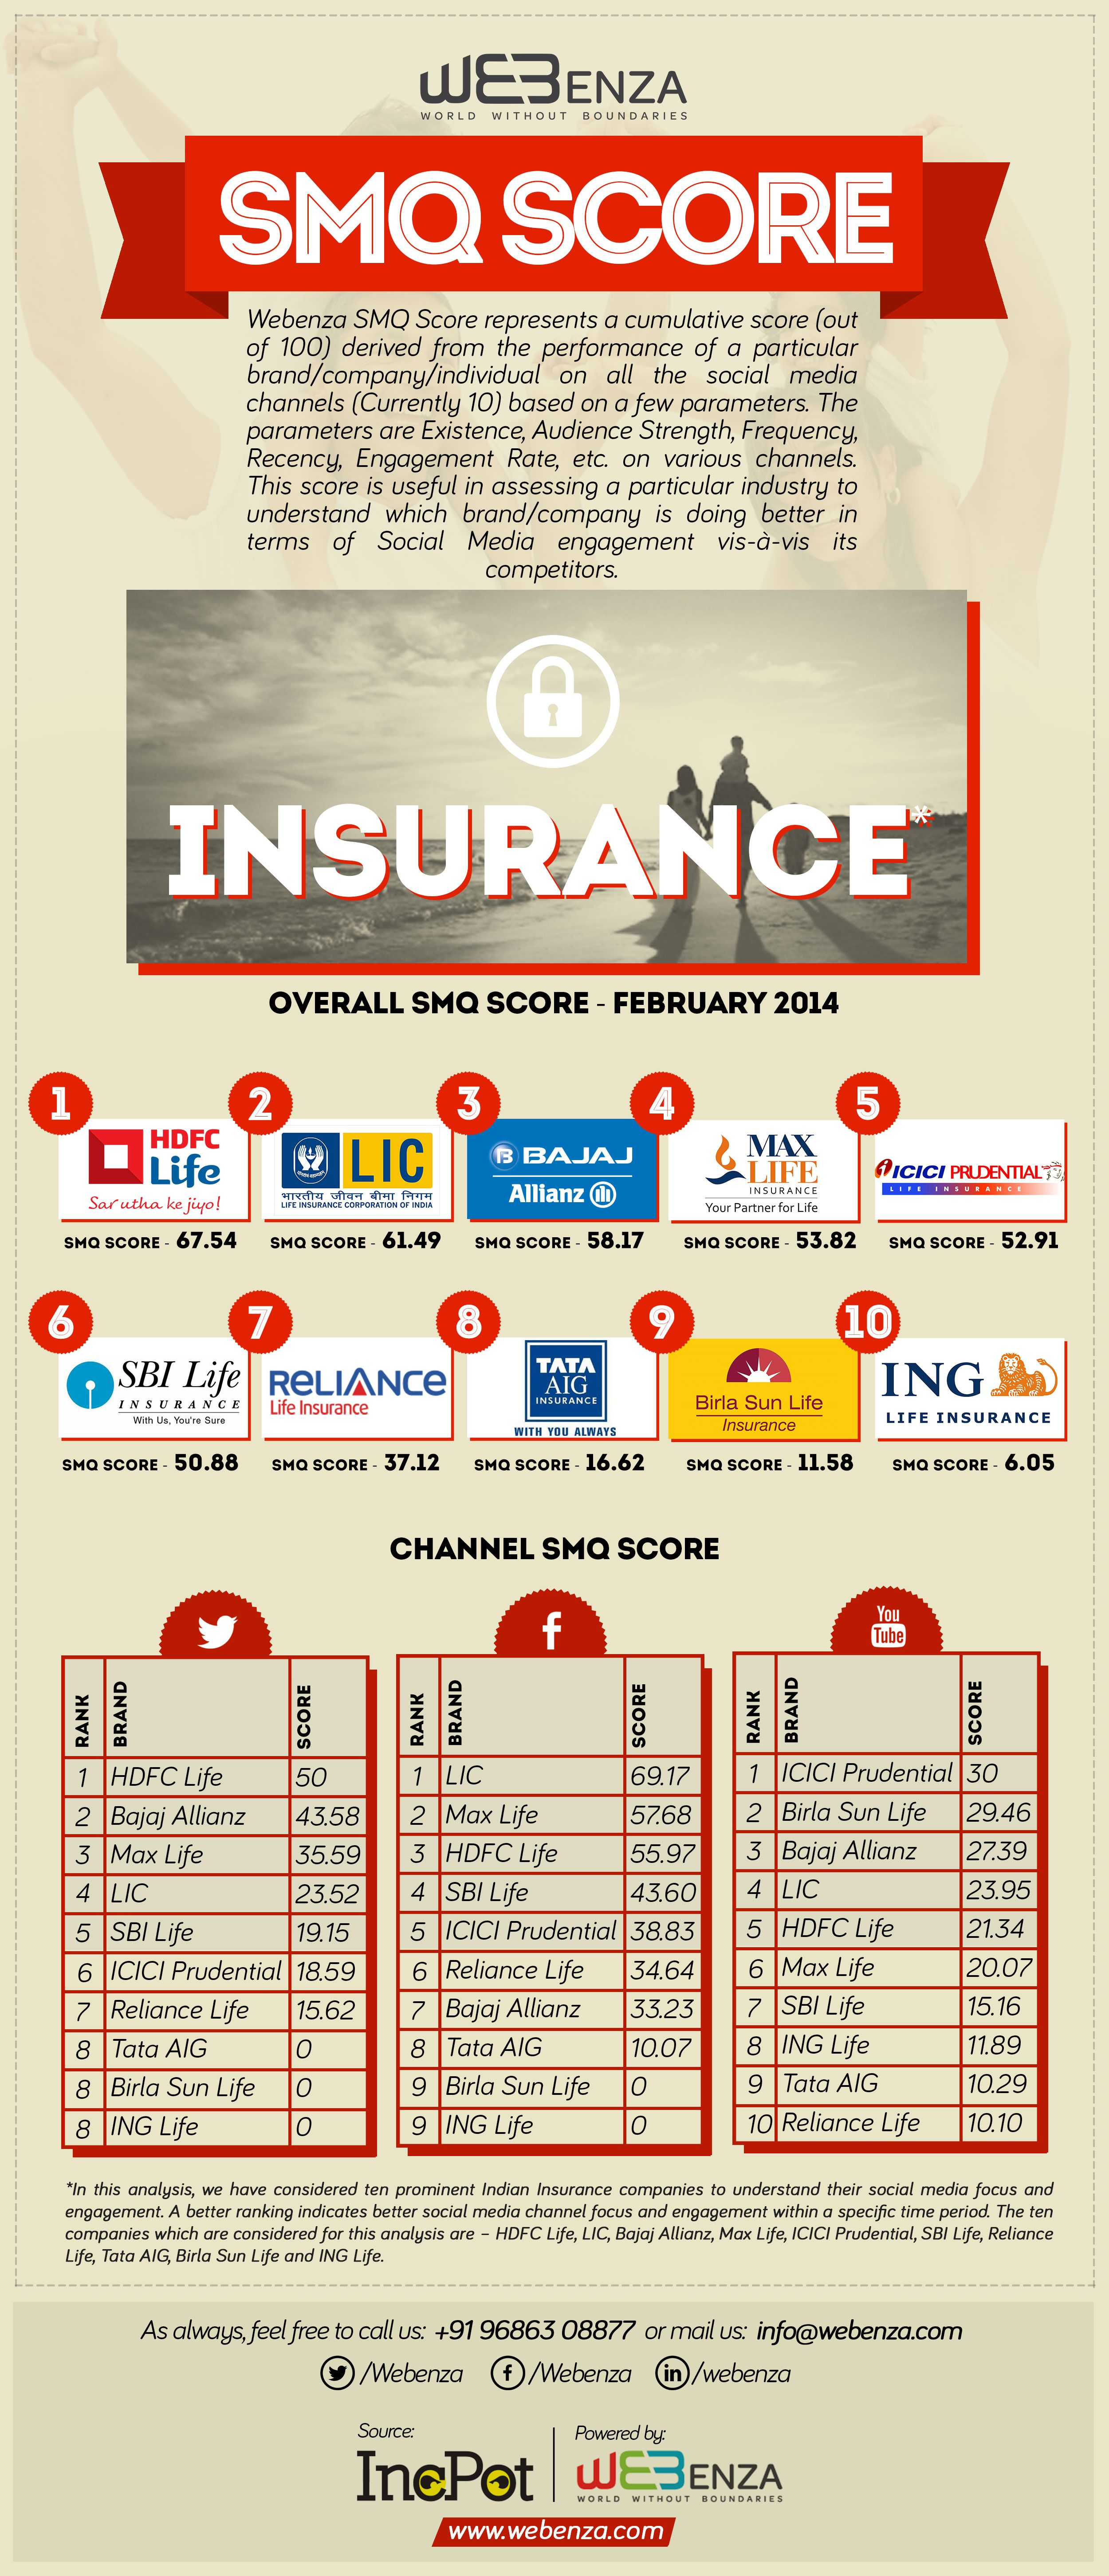 Social Media Quotient Analysis Of Indian Insurance Providers To